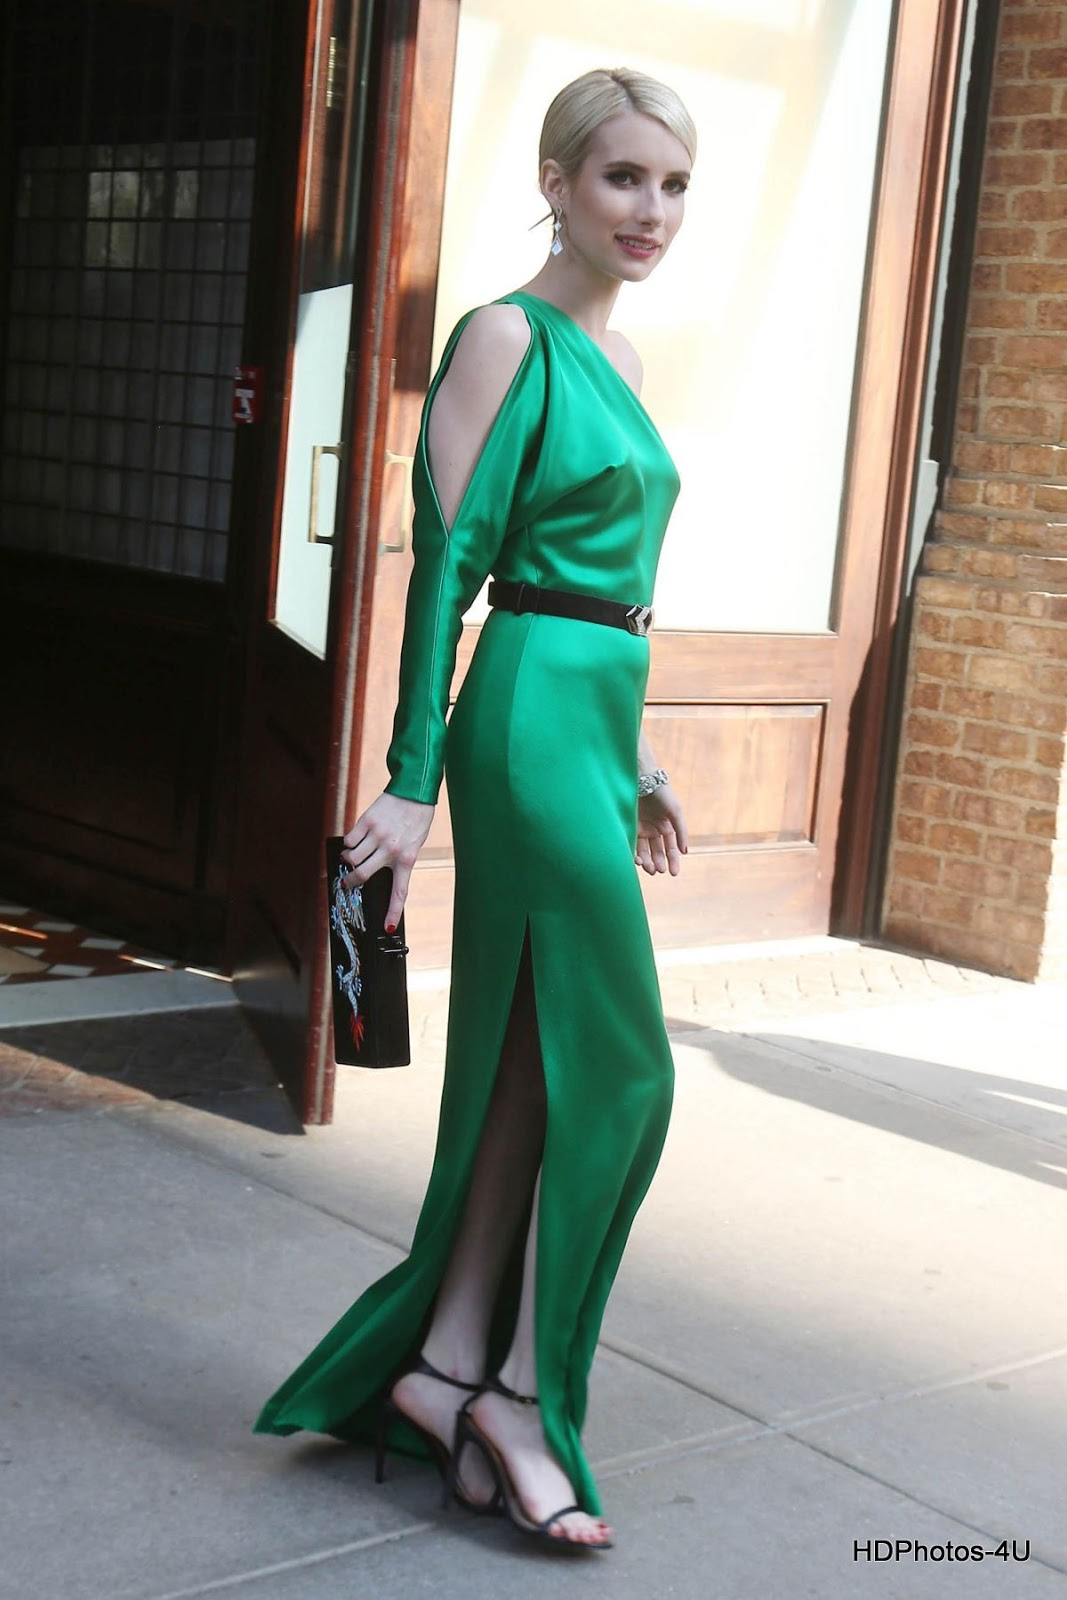 Full HQ Photos of Emma Roberts in Green Dress at MET Gala 2015 in New York